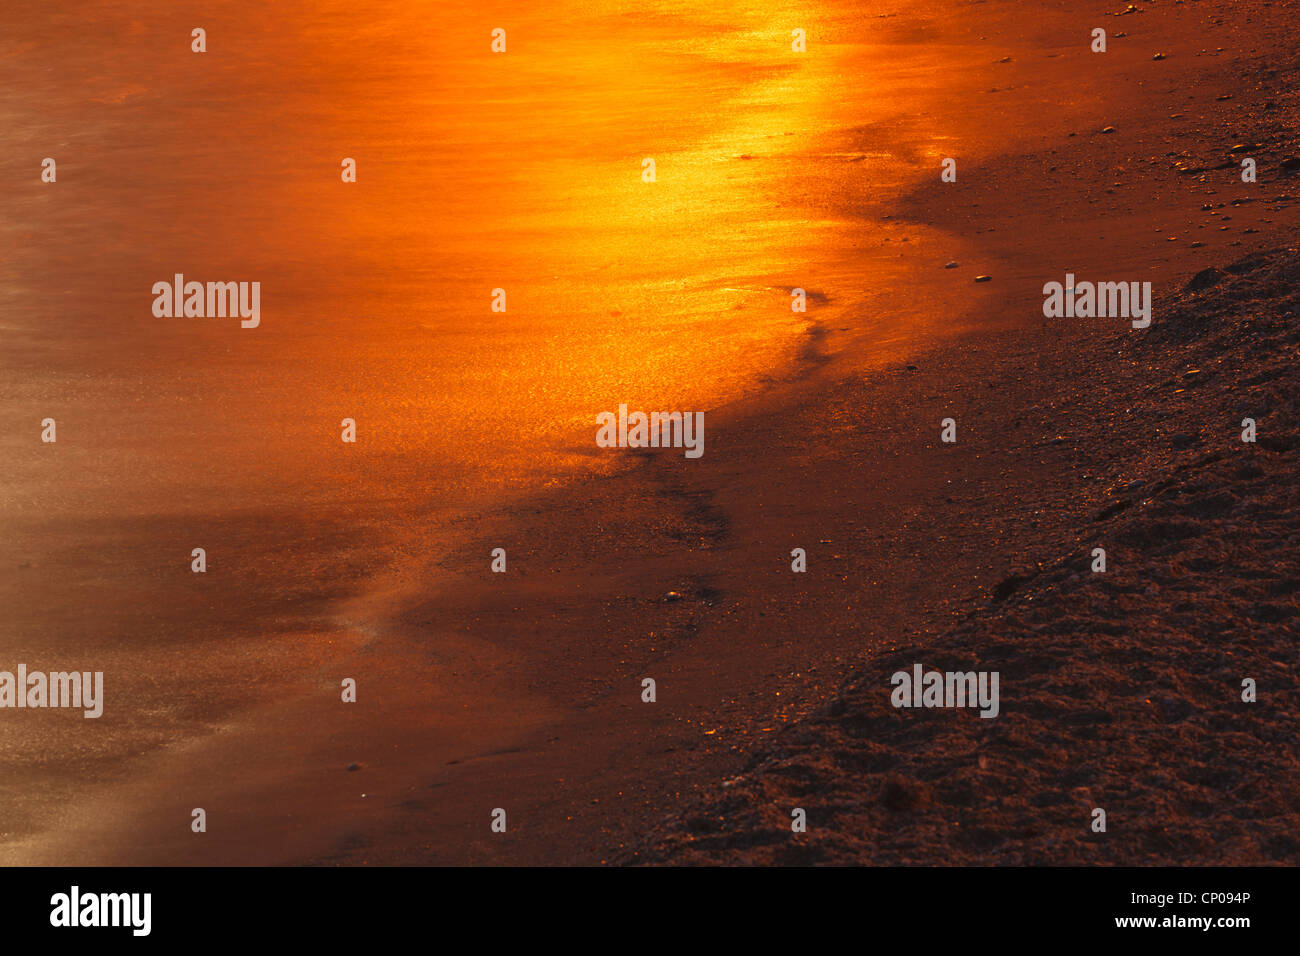 Golden reflection of setting or rising sun in water on shoreline. - Stock Image